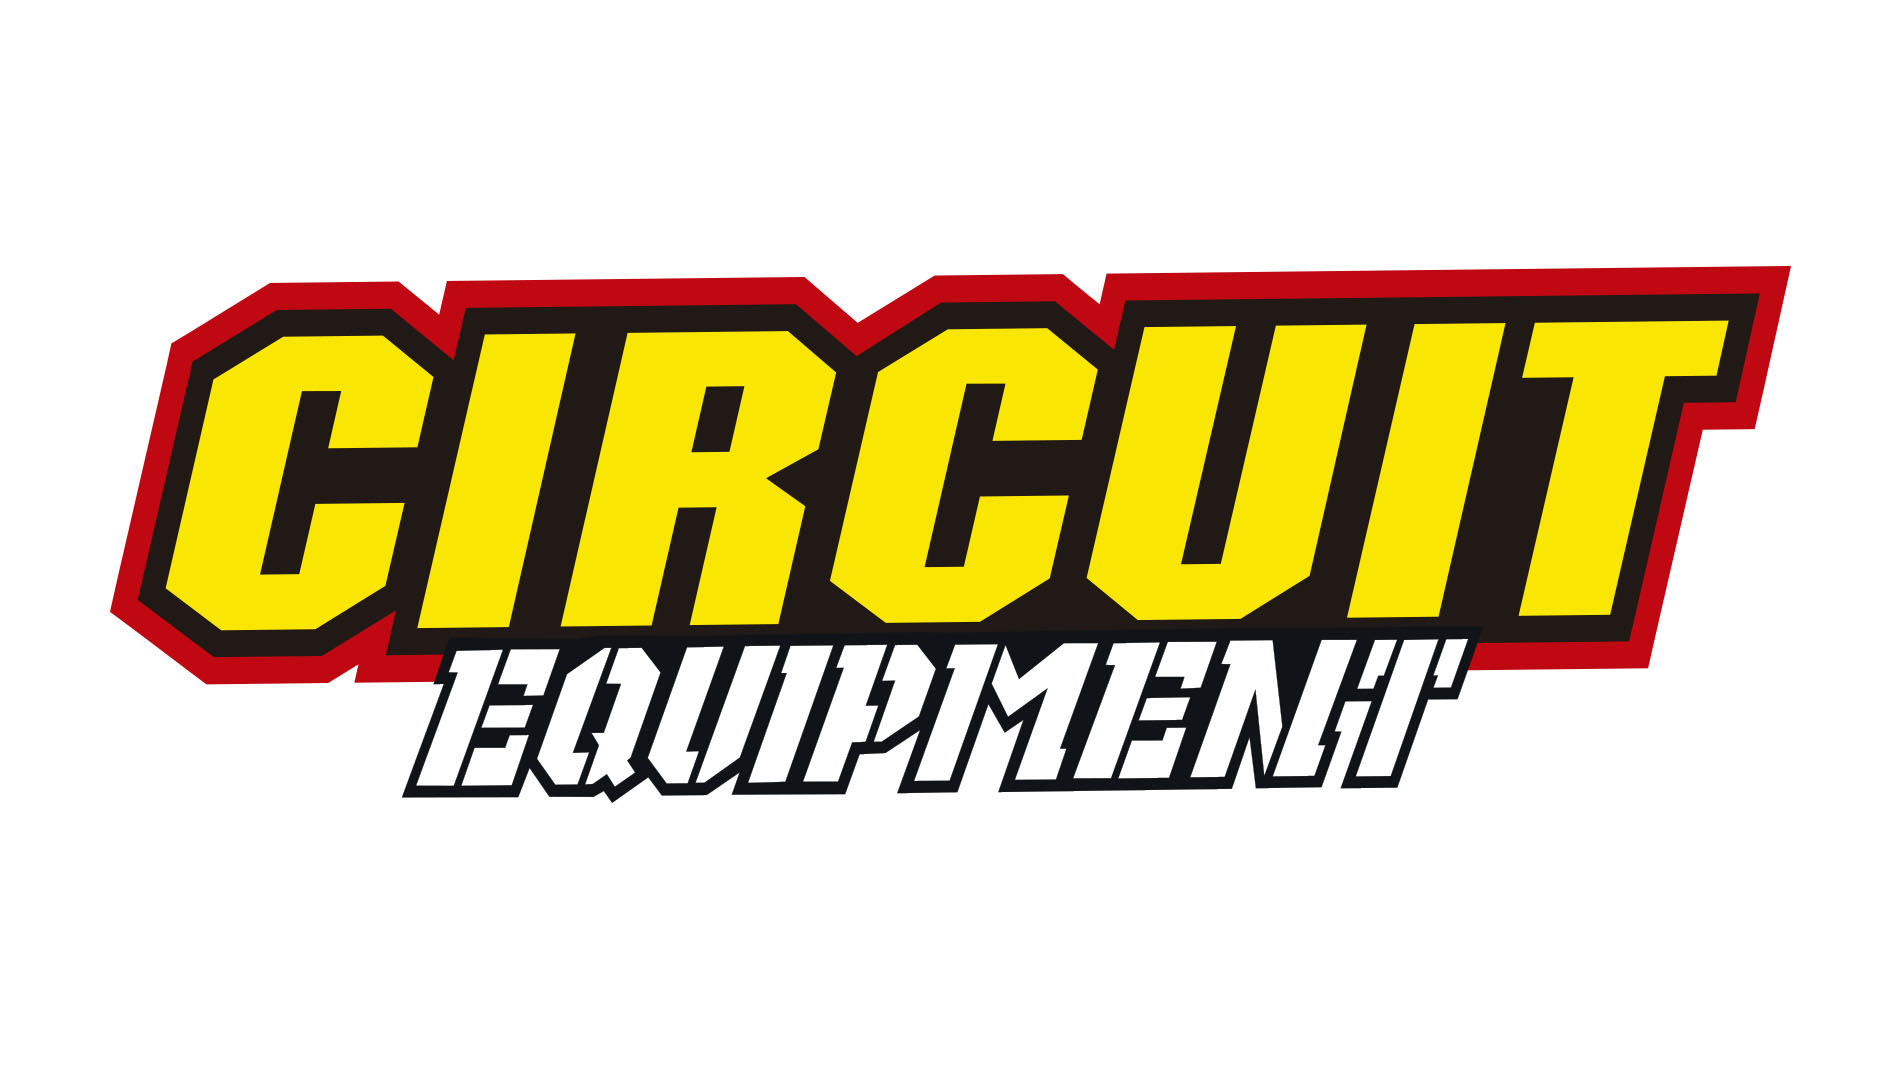 circuit reacing